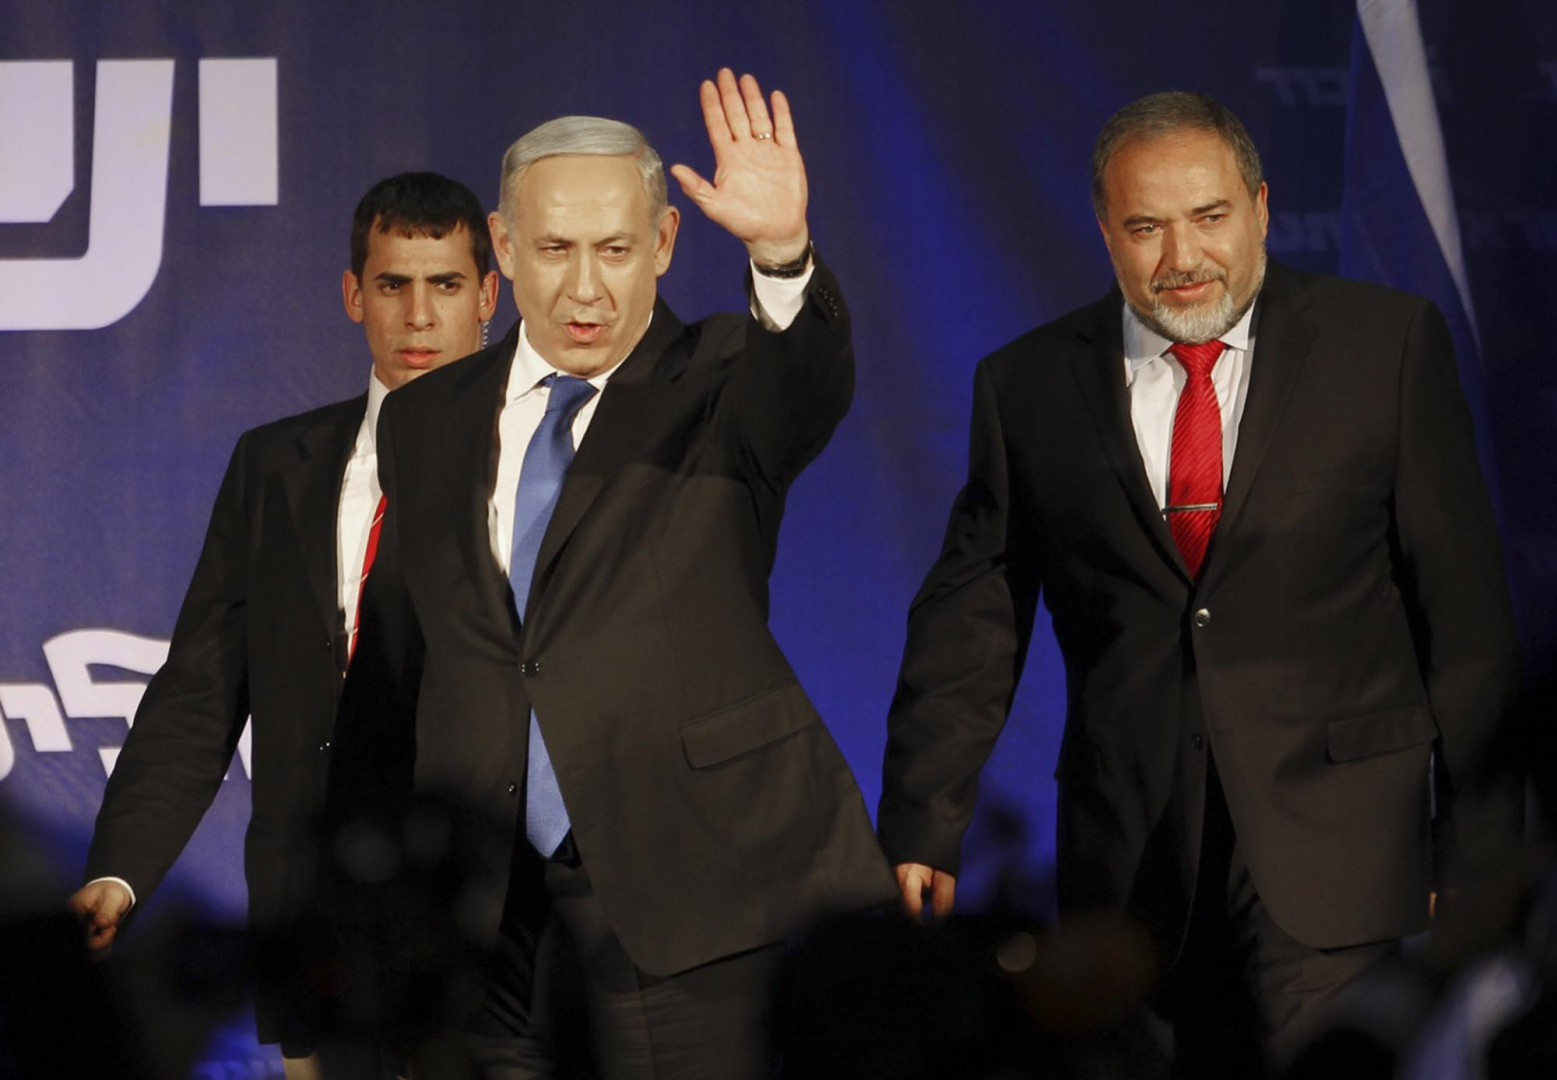 FILE - In this Wednesday, Jan. 23, 2013, file photo, Israel's Prime Minister Benjamin Netanyahu and former Foreign Minister Avigdor Lieberman greet their supporters in Tel Aviv, Israel. Israels incoming defense minister once called for bombing Egypt, just weeks ago suggested that Israel kill Hamas leader in the Gaza Strip and has opposed prosecution of a soldier accused of manslaughter _ just a few of the positions that could put former bar bouncer Avigdor Lieberman at odds with a military he now commands. (ANSA/AP Photo/Ariel Schalit, File) [CopyrightNotice: AP2012]